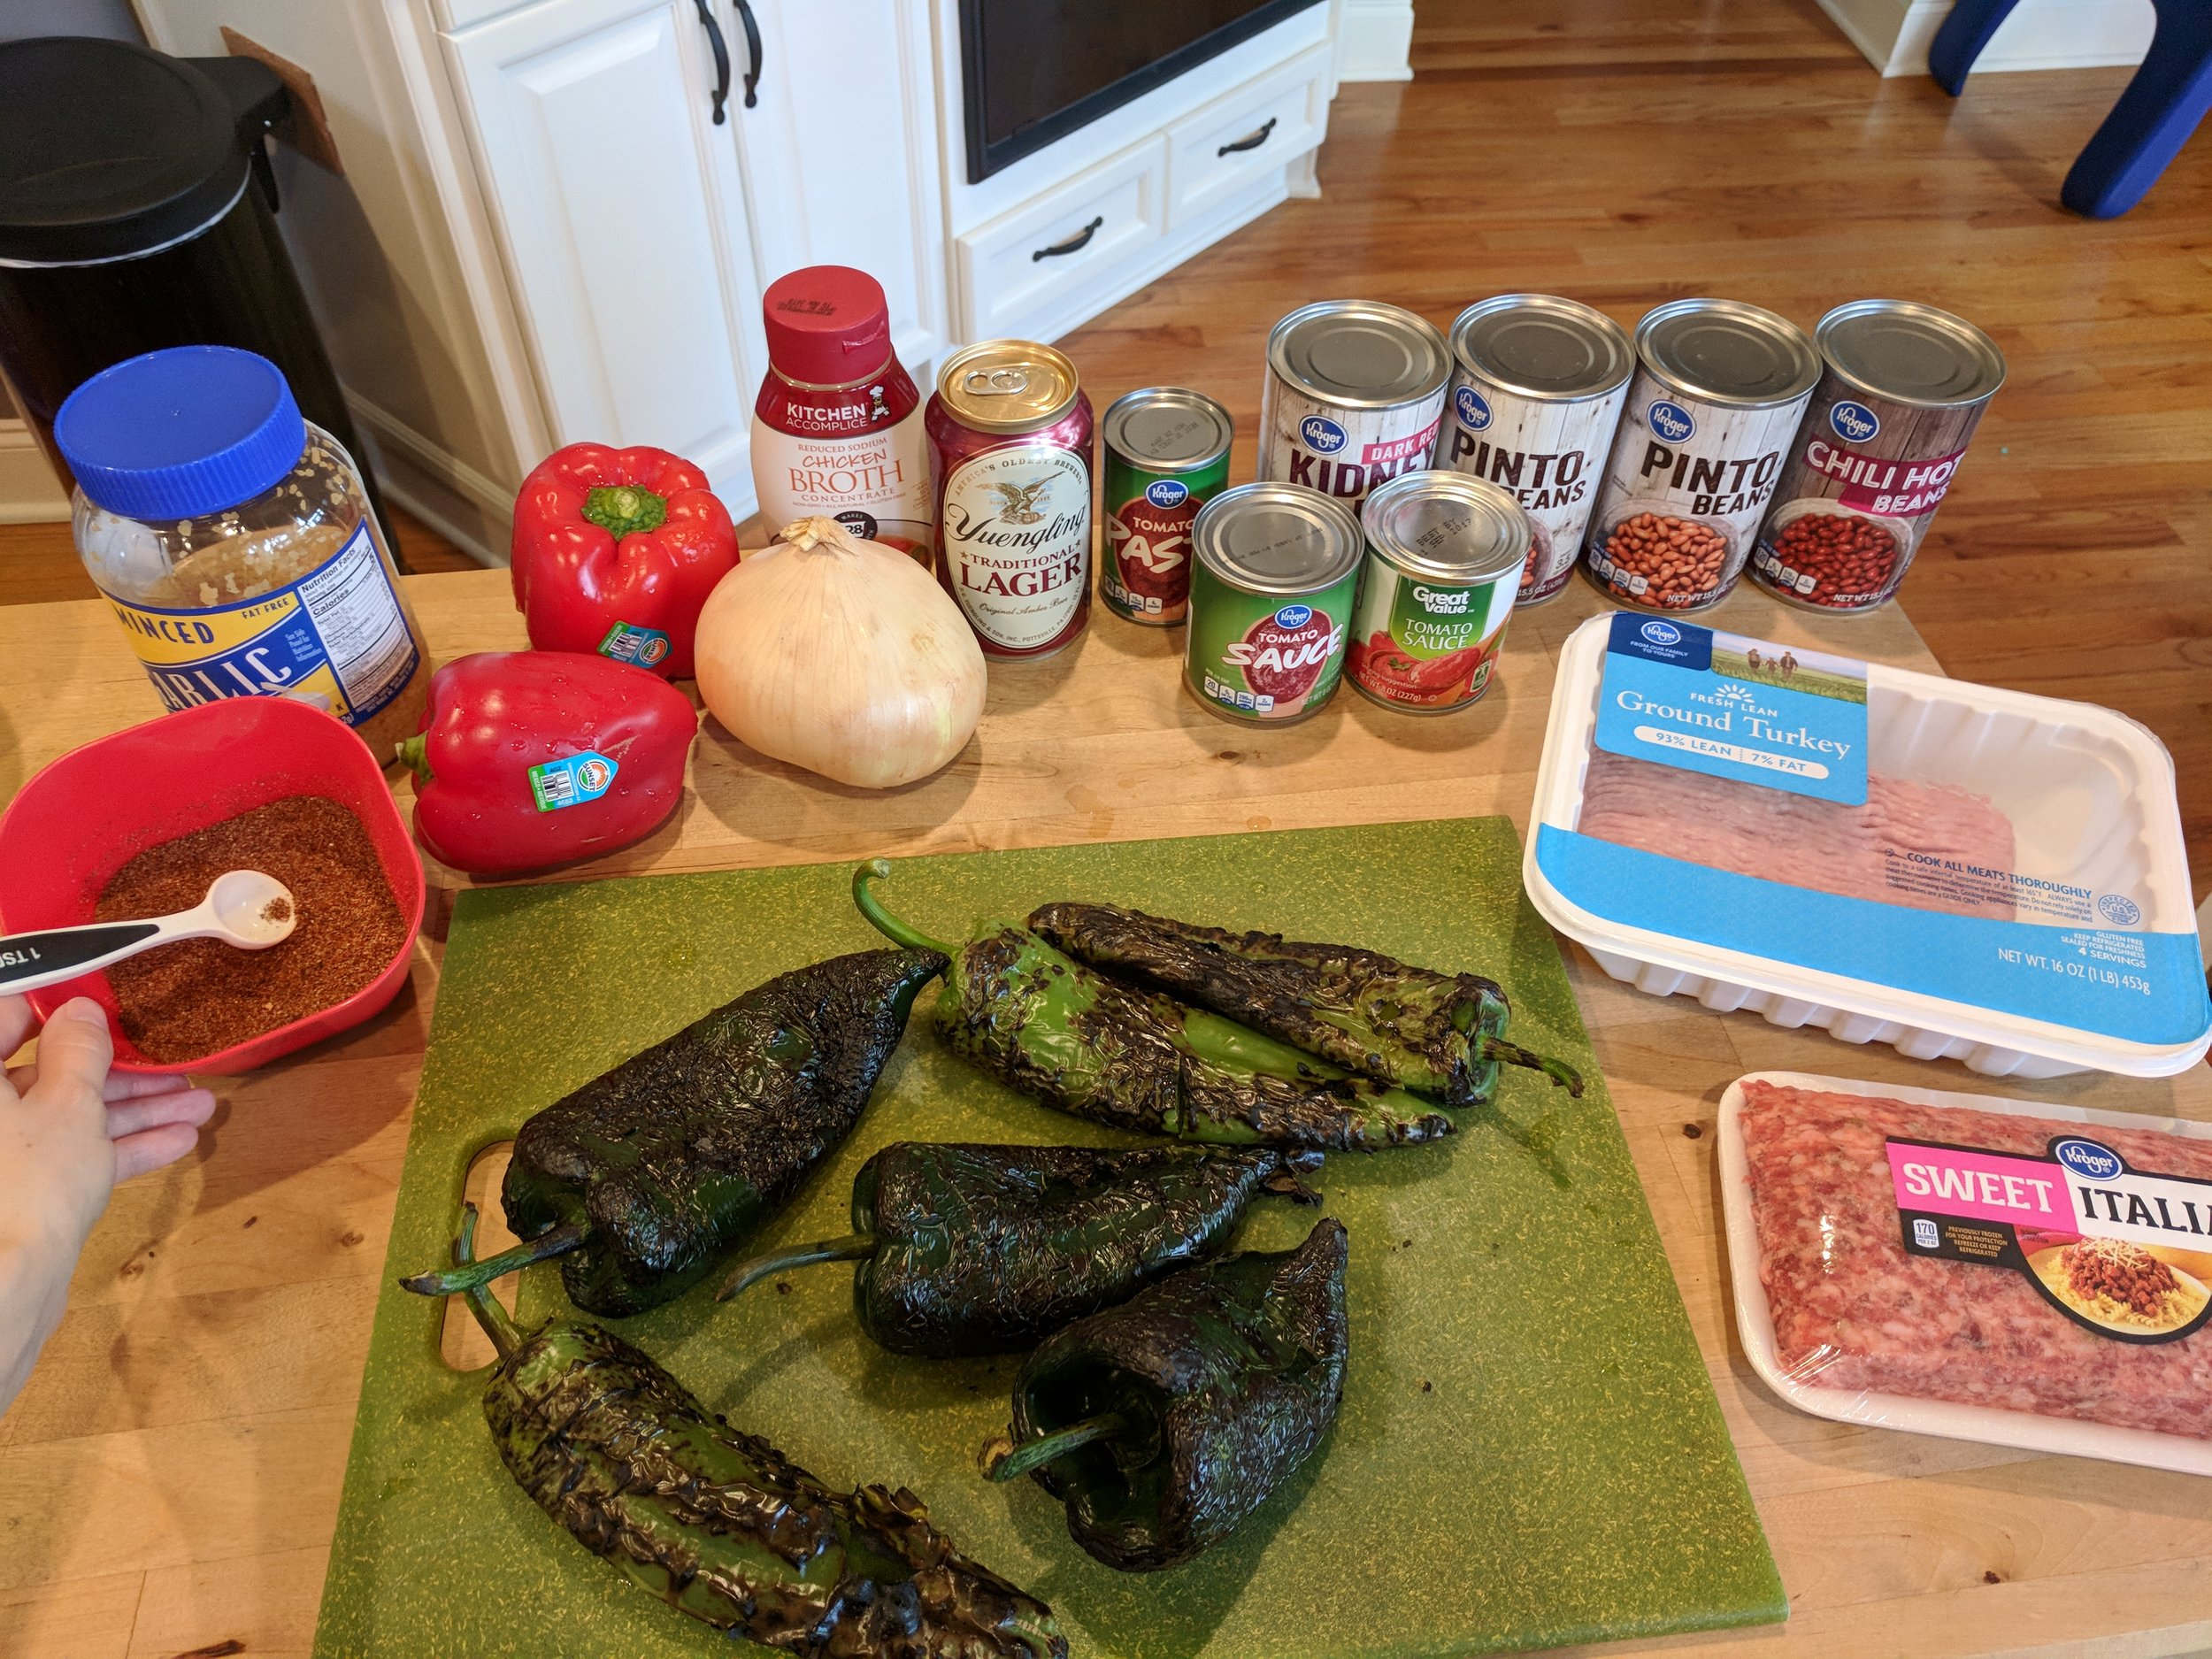 Tons of flavor comes from the variety of ingredients, not pictured is the stew meat